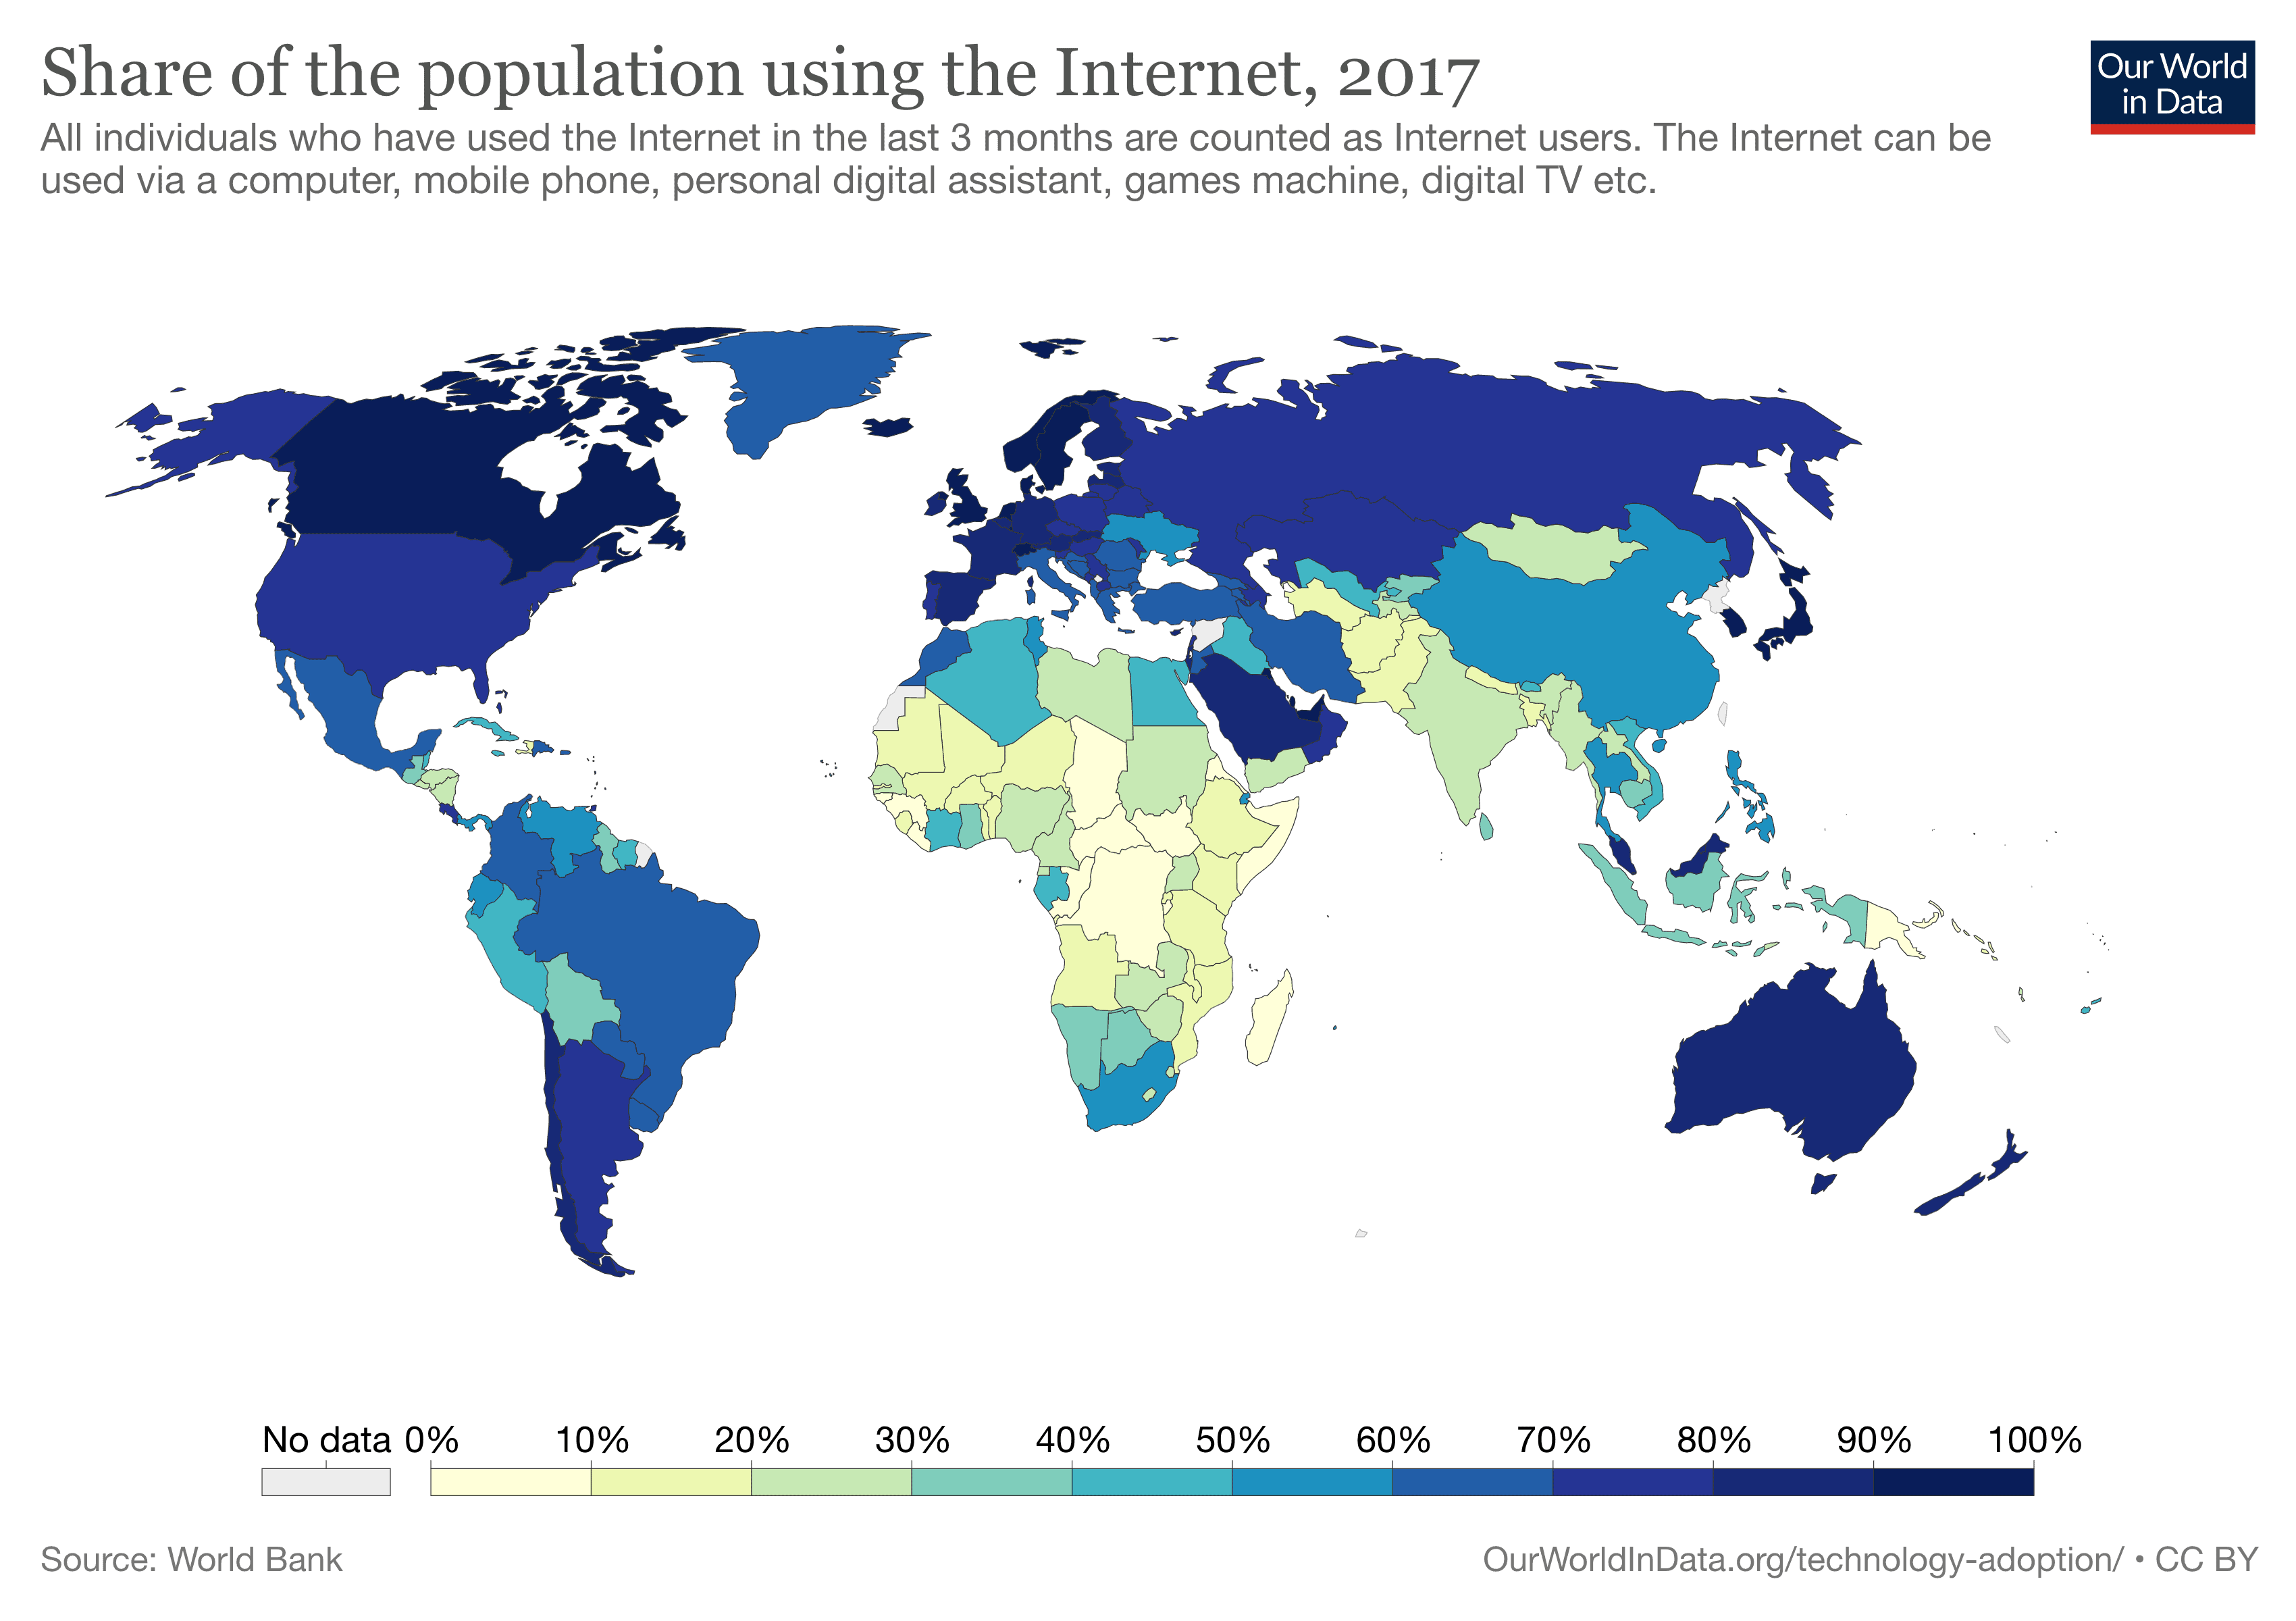 Individuals using the internet 2017